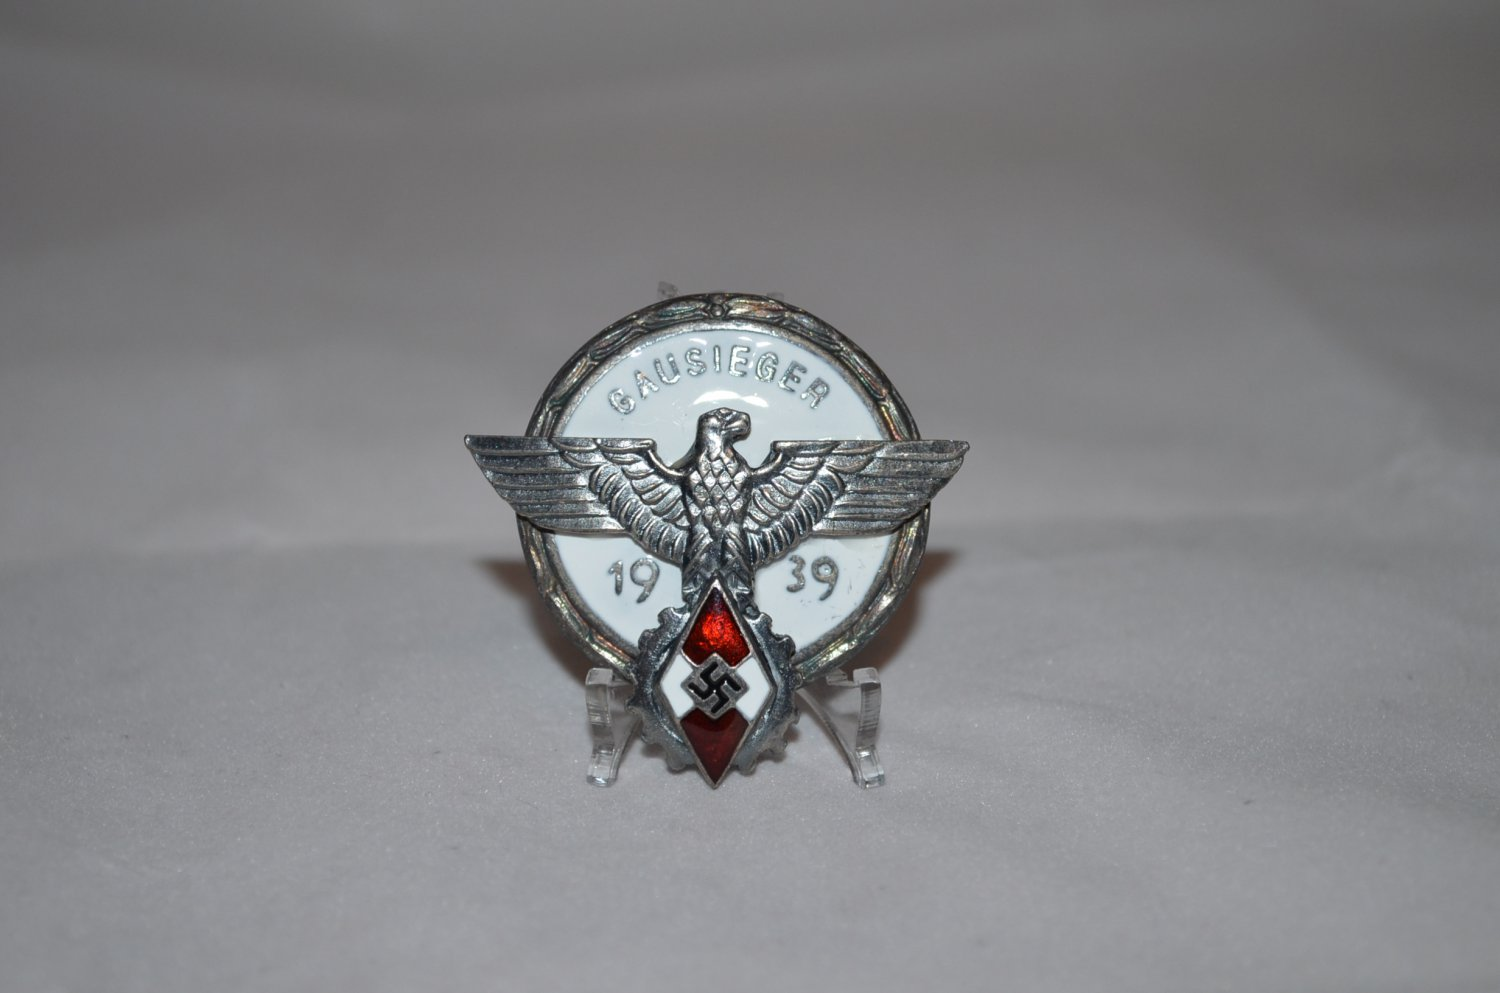 WWII THE GERMAN SILVER BADGE GAUSIEGER 1939